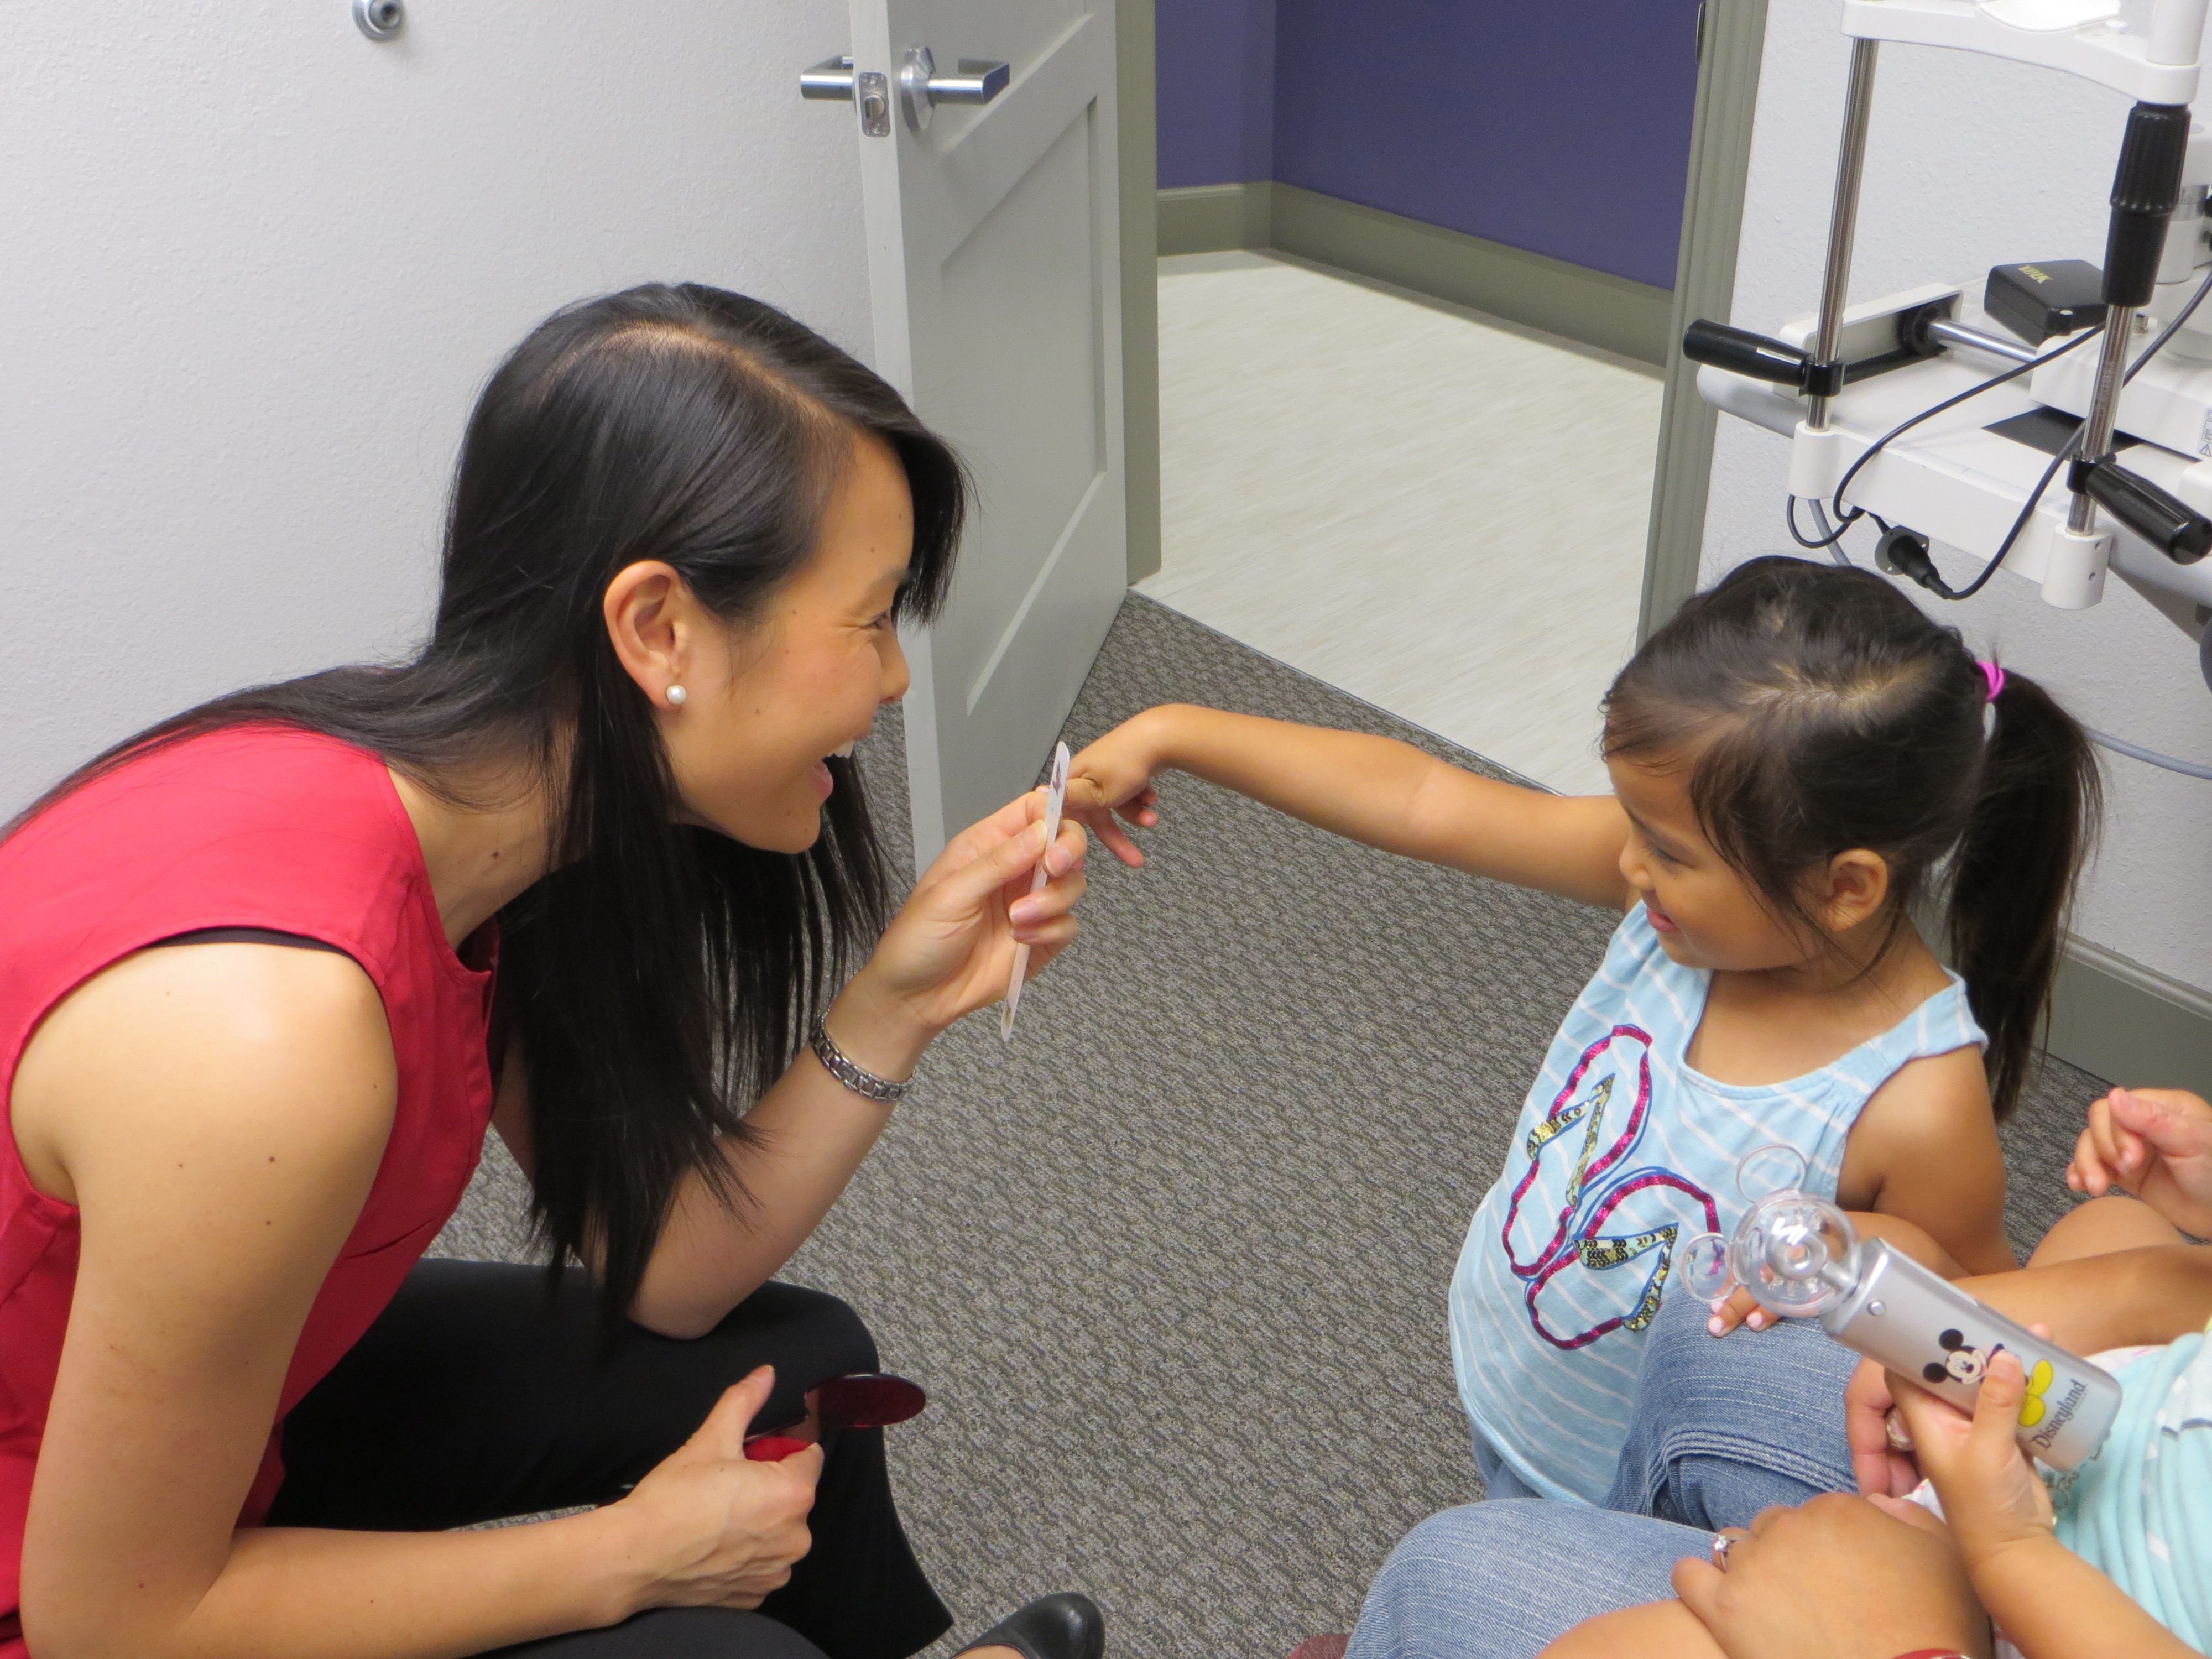 Dr. Valerie Lam engages a young patient in order to check convergence and perform a cover test.